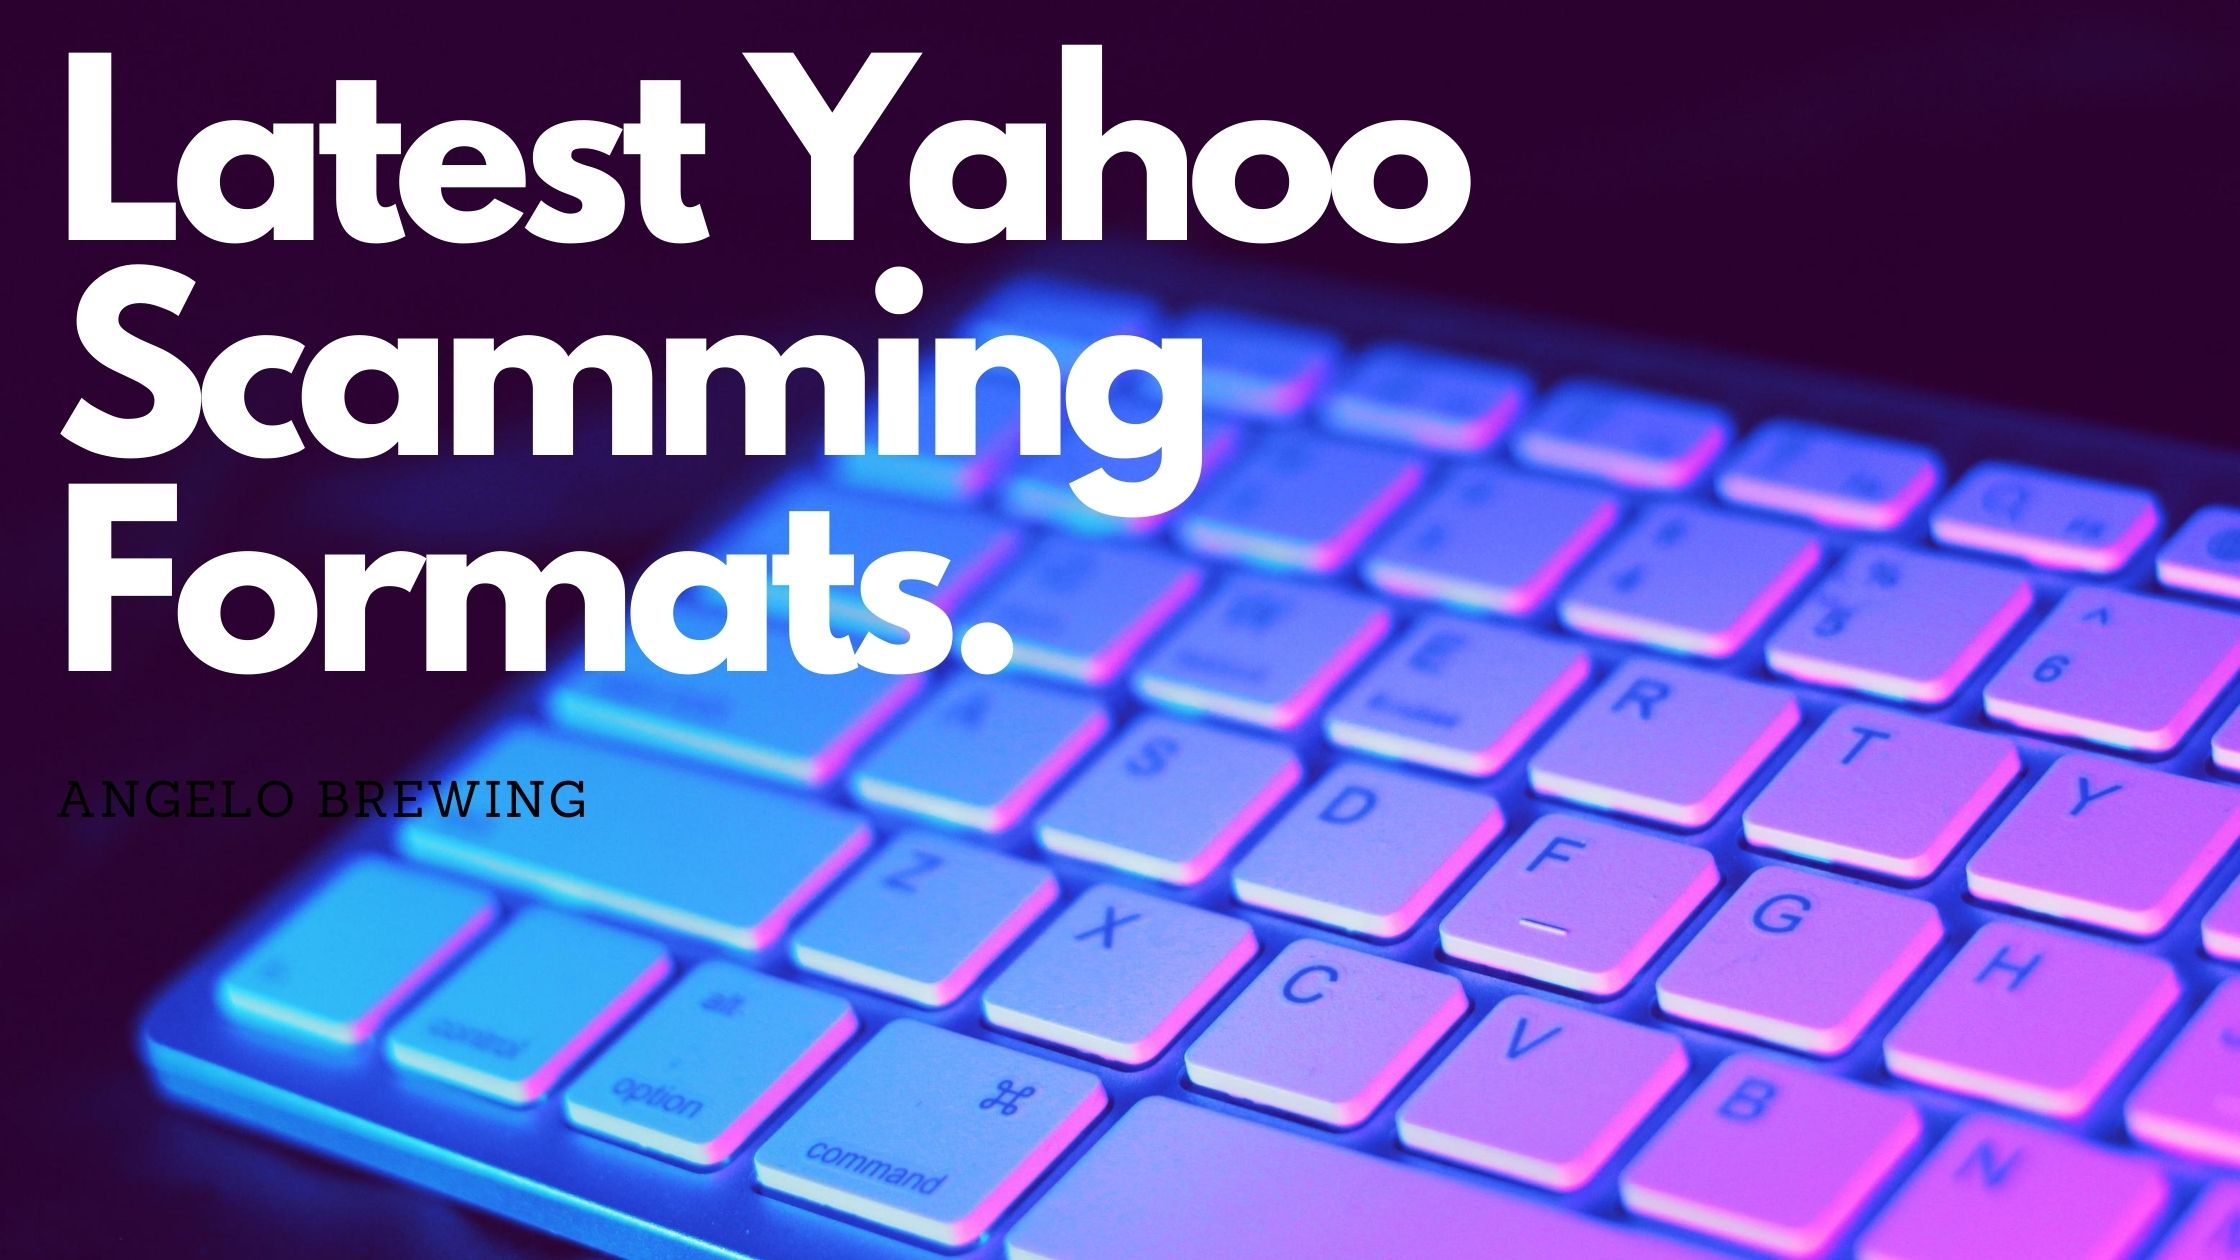 latest scamming formats for yahoo